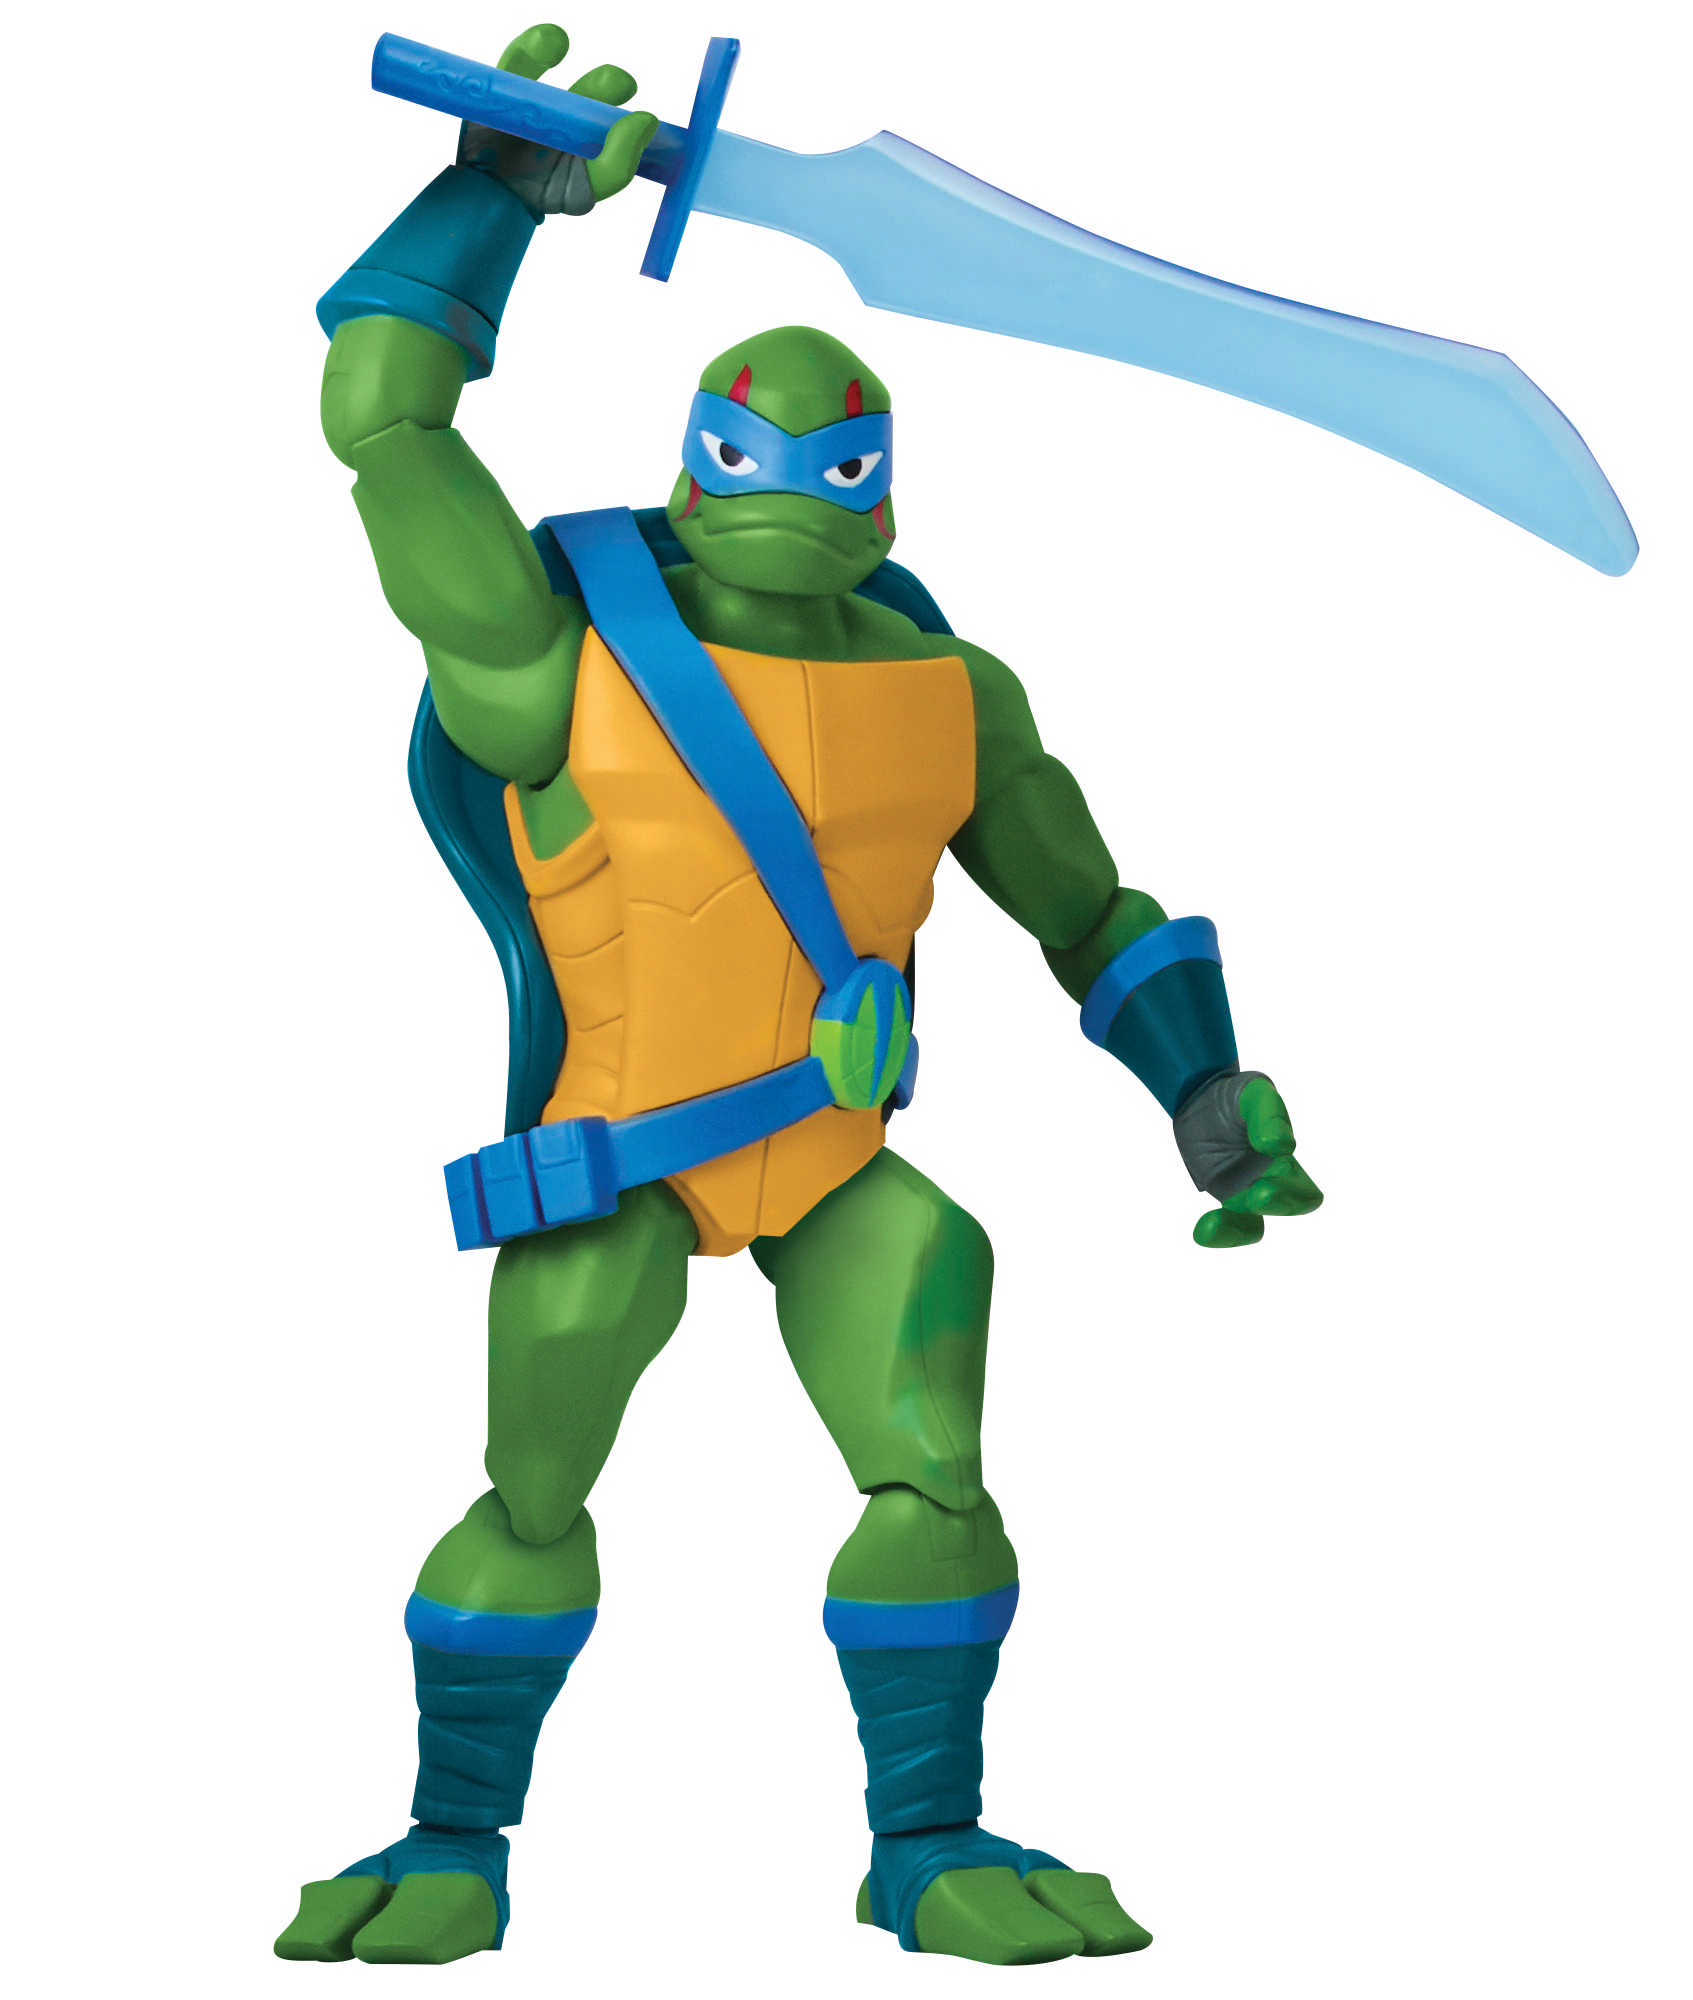 Turtle Toys For Turtles : Rise of the teenage mutant ninja turtles toys debut before